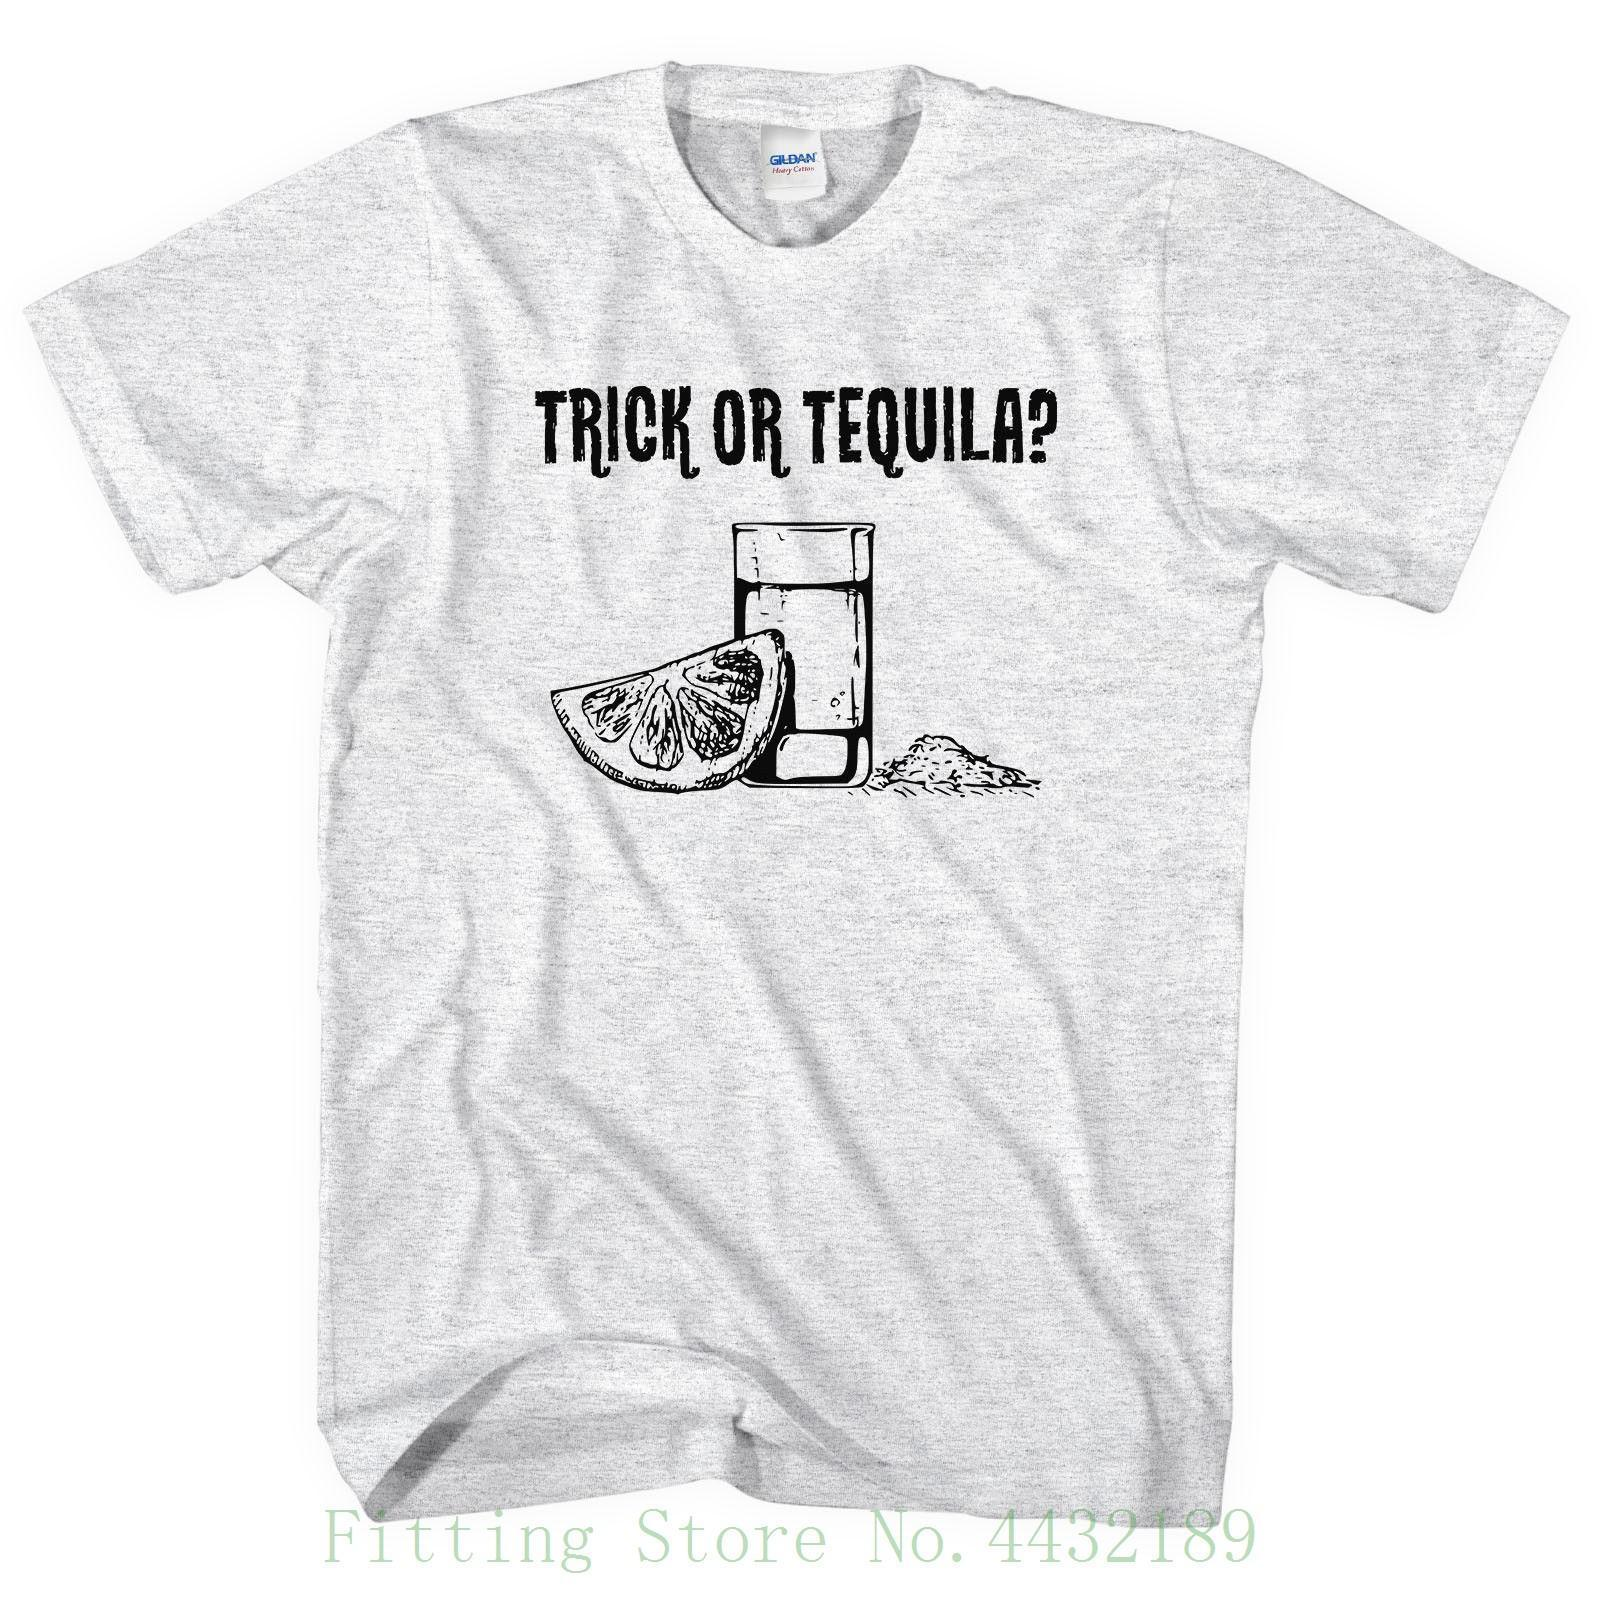 c64874a72 Trick Or Tequila T Shirt Halloween Tshirt Men Women Party Treat Drinking  L118 Tops Tees Men 100% Cotton One Tee A Day Random Graphic Tees From  Yubin09, ...